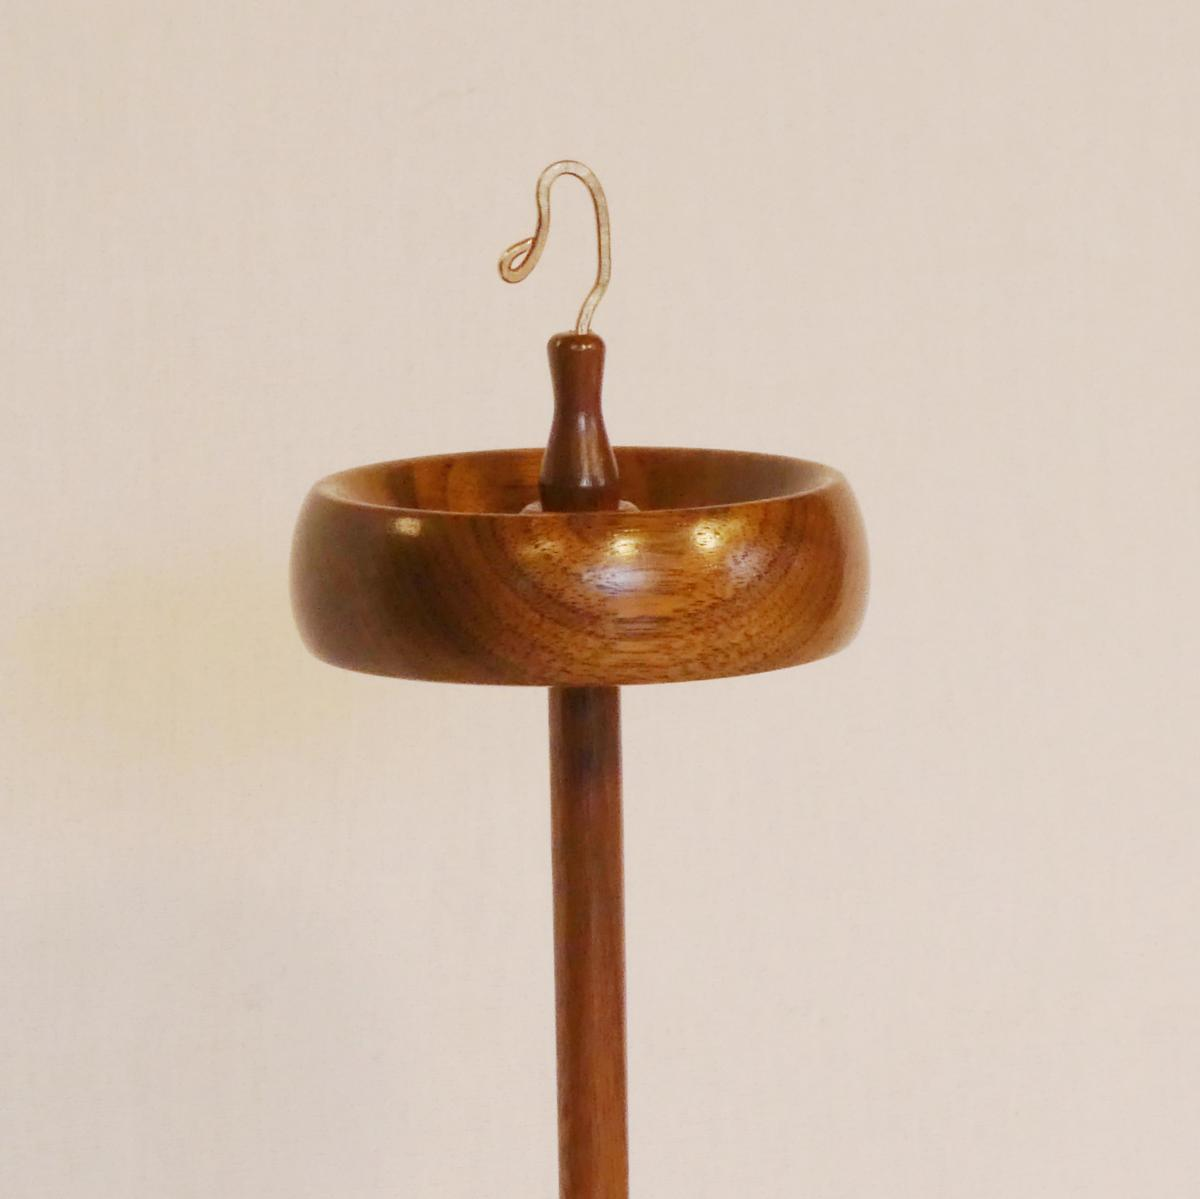 Spindle 367 a trunk size top whorl drop spindle designed and turned by Cynthia D. Haney from black walnut wood. With a jewelry quality bronze hook.